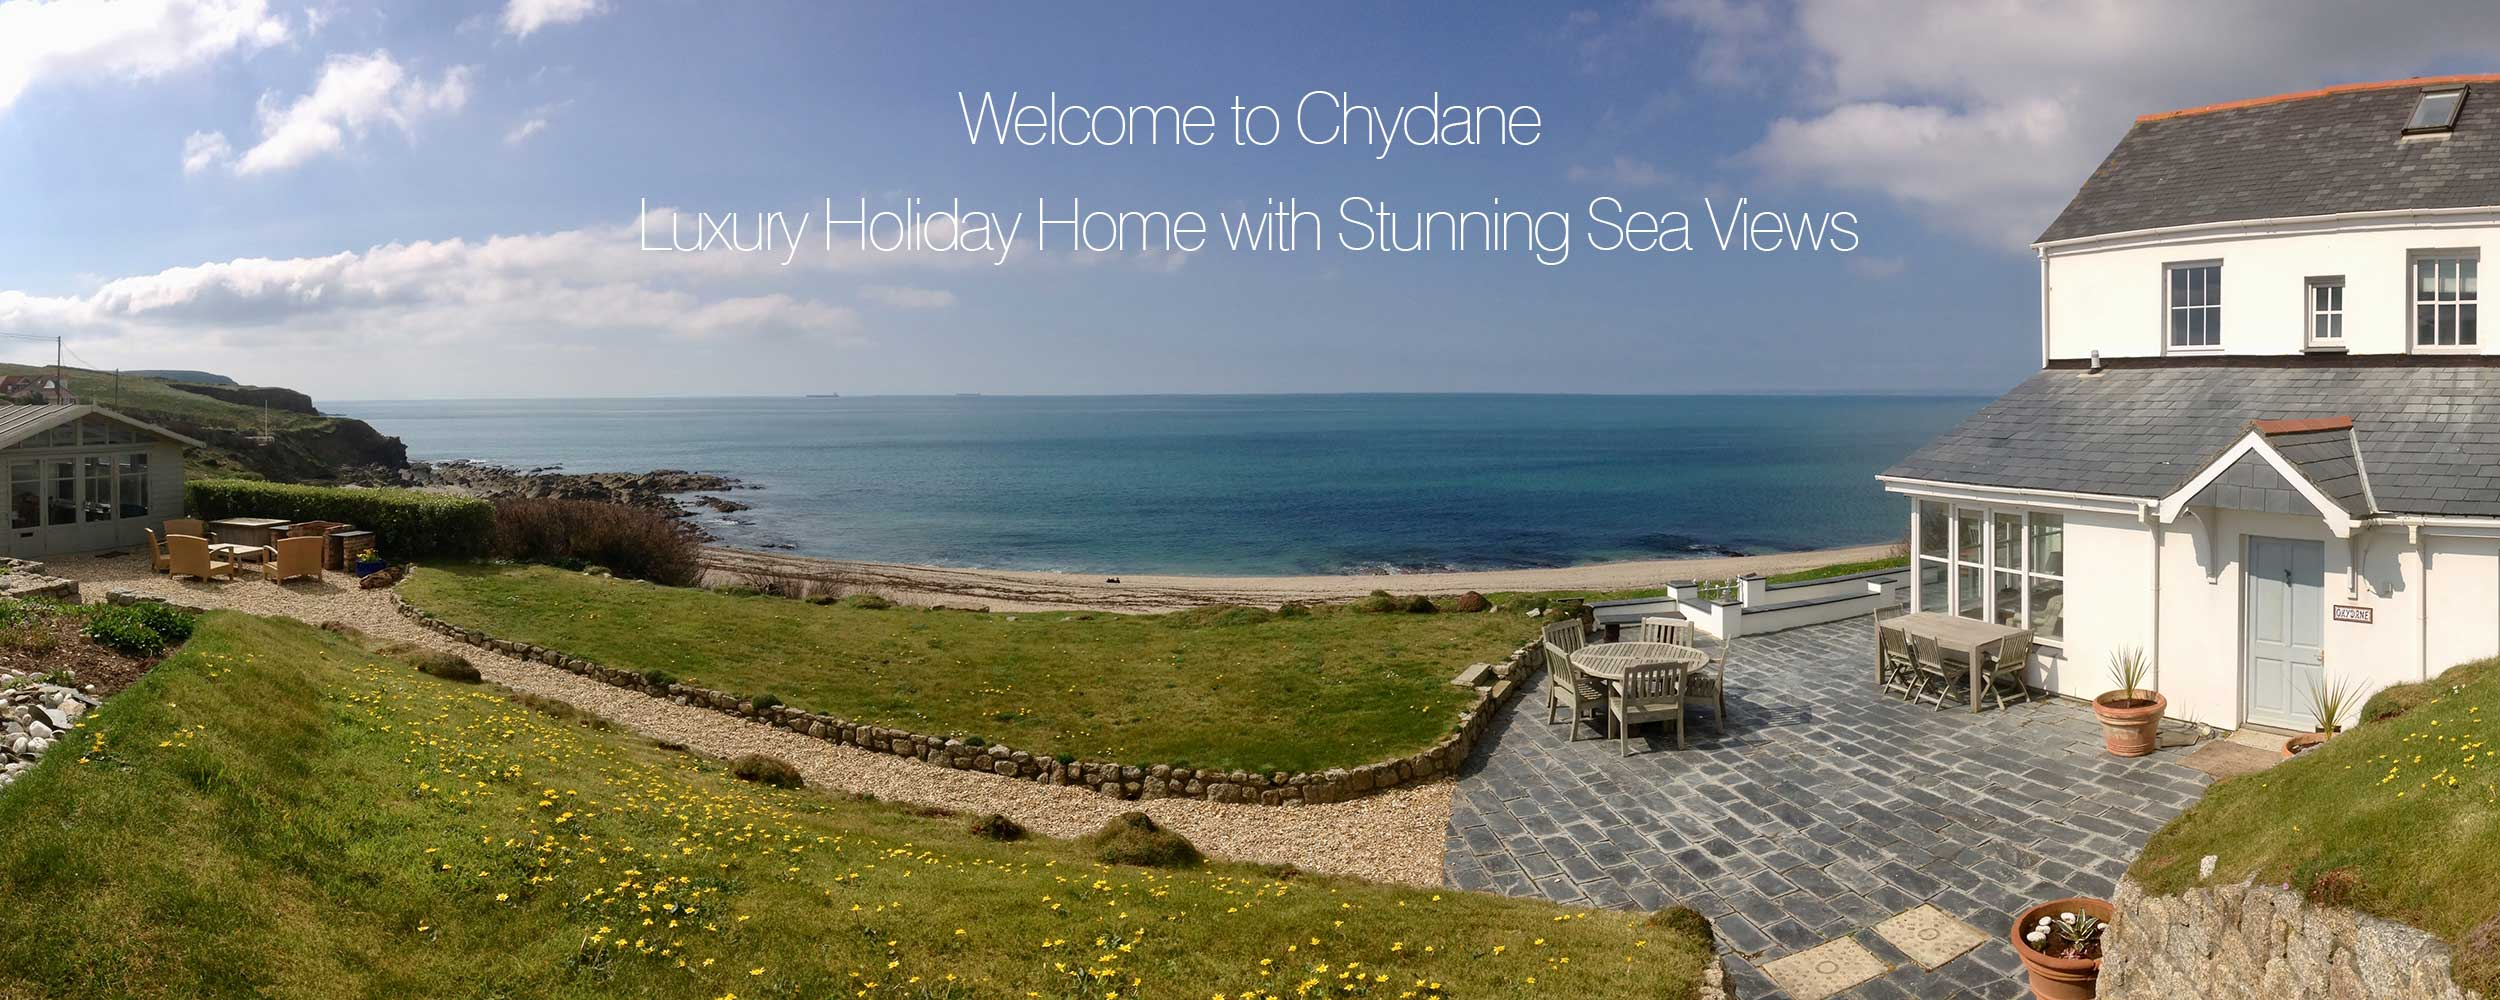 Enjoy a wonderful holiday at Chydane